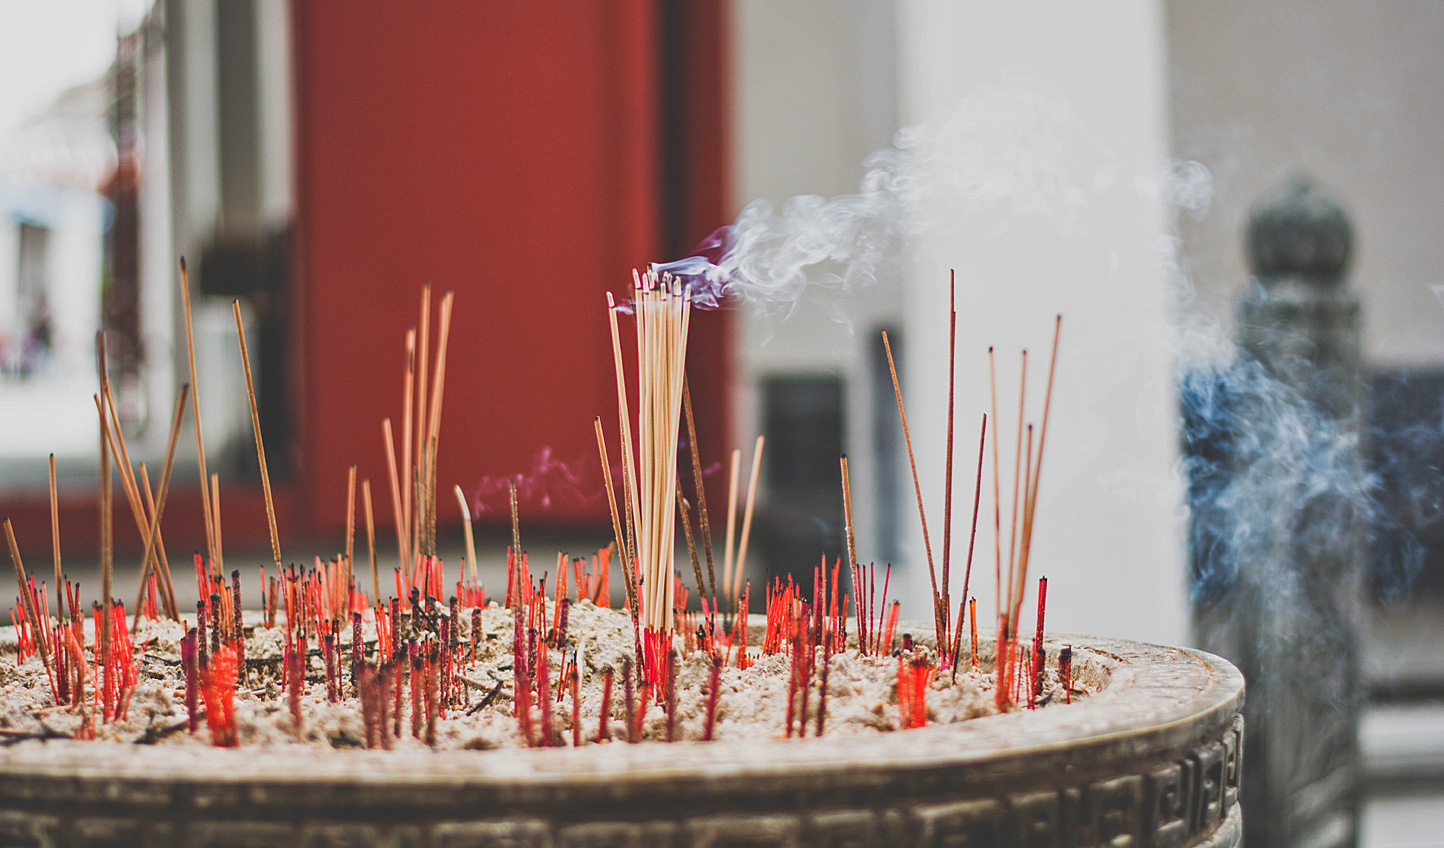 Breathe in the wafts of incense as you pass by temples